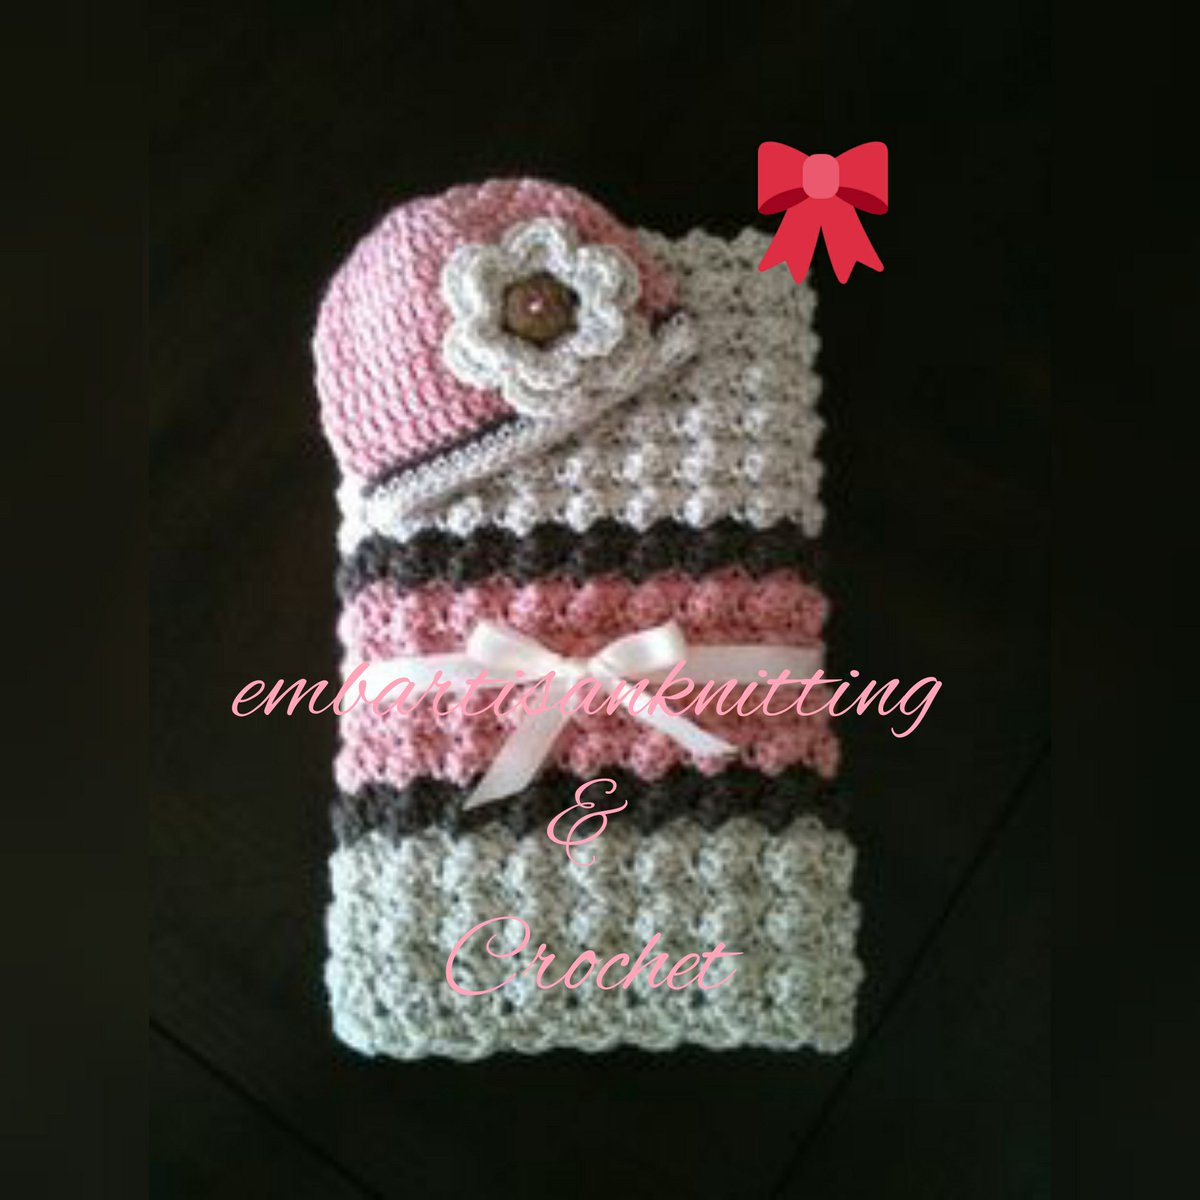 Baby #blanket and #hat set in #crochet #Ireland ,#embartisanknitting,#Spain,#France#Germany#U.S.A,#UK,#Italy,#Portugal,#Belgium.<br>http://pic.twitter.com/YnbpvKI95k